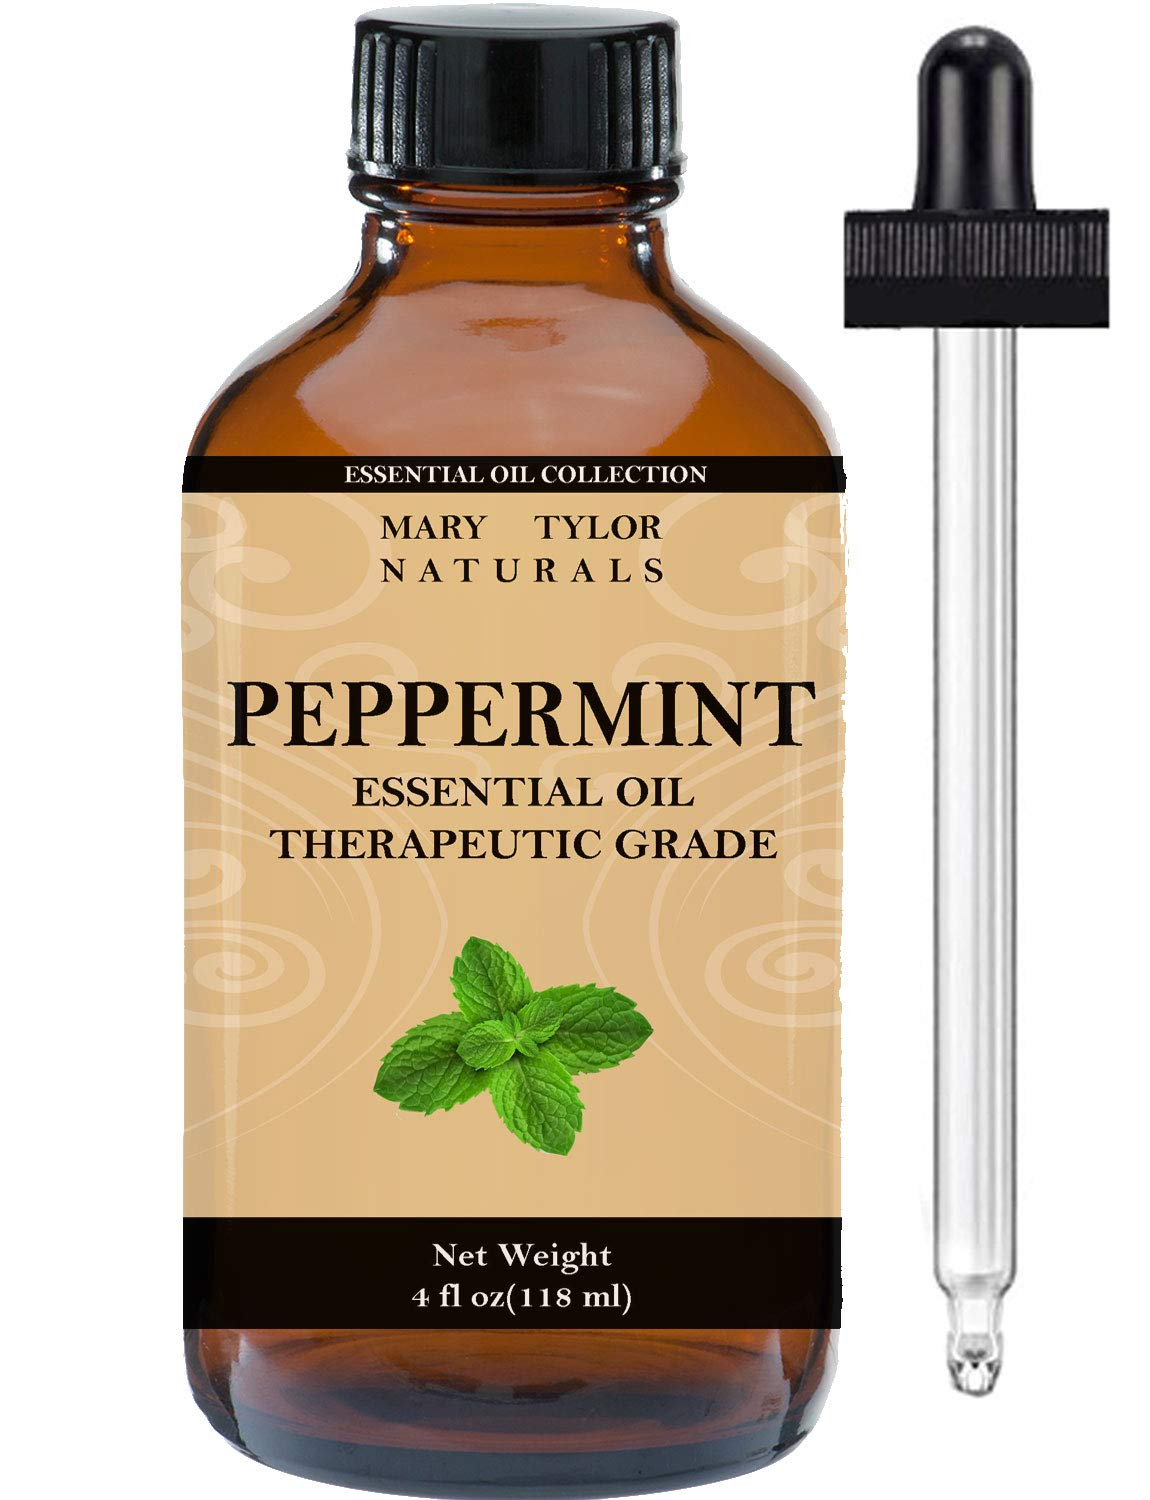 Peppermint Essential Oil 4 oz, by Mary Tylor Naturals, Premium Therapeutic Grade, 100% Pure, Perfect for Aromatherapy, Relaxation, Improved Mood, Repel Mice Pests and Much More EO-2001